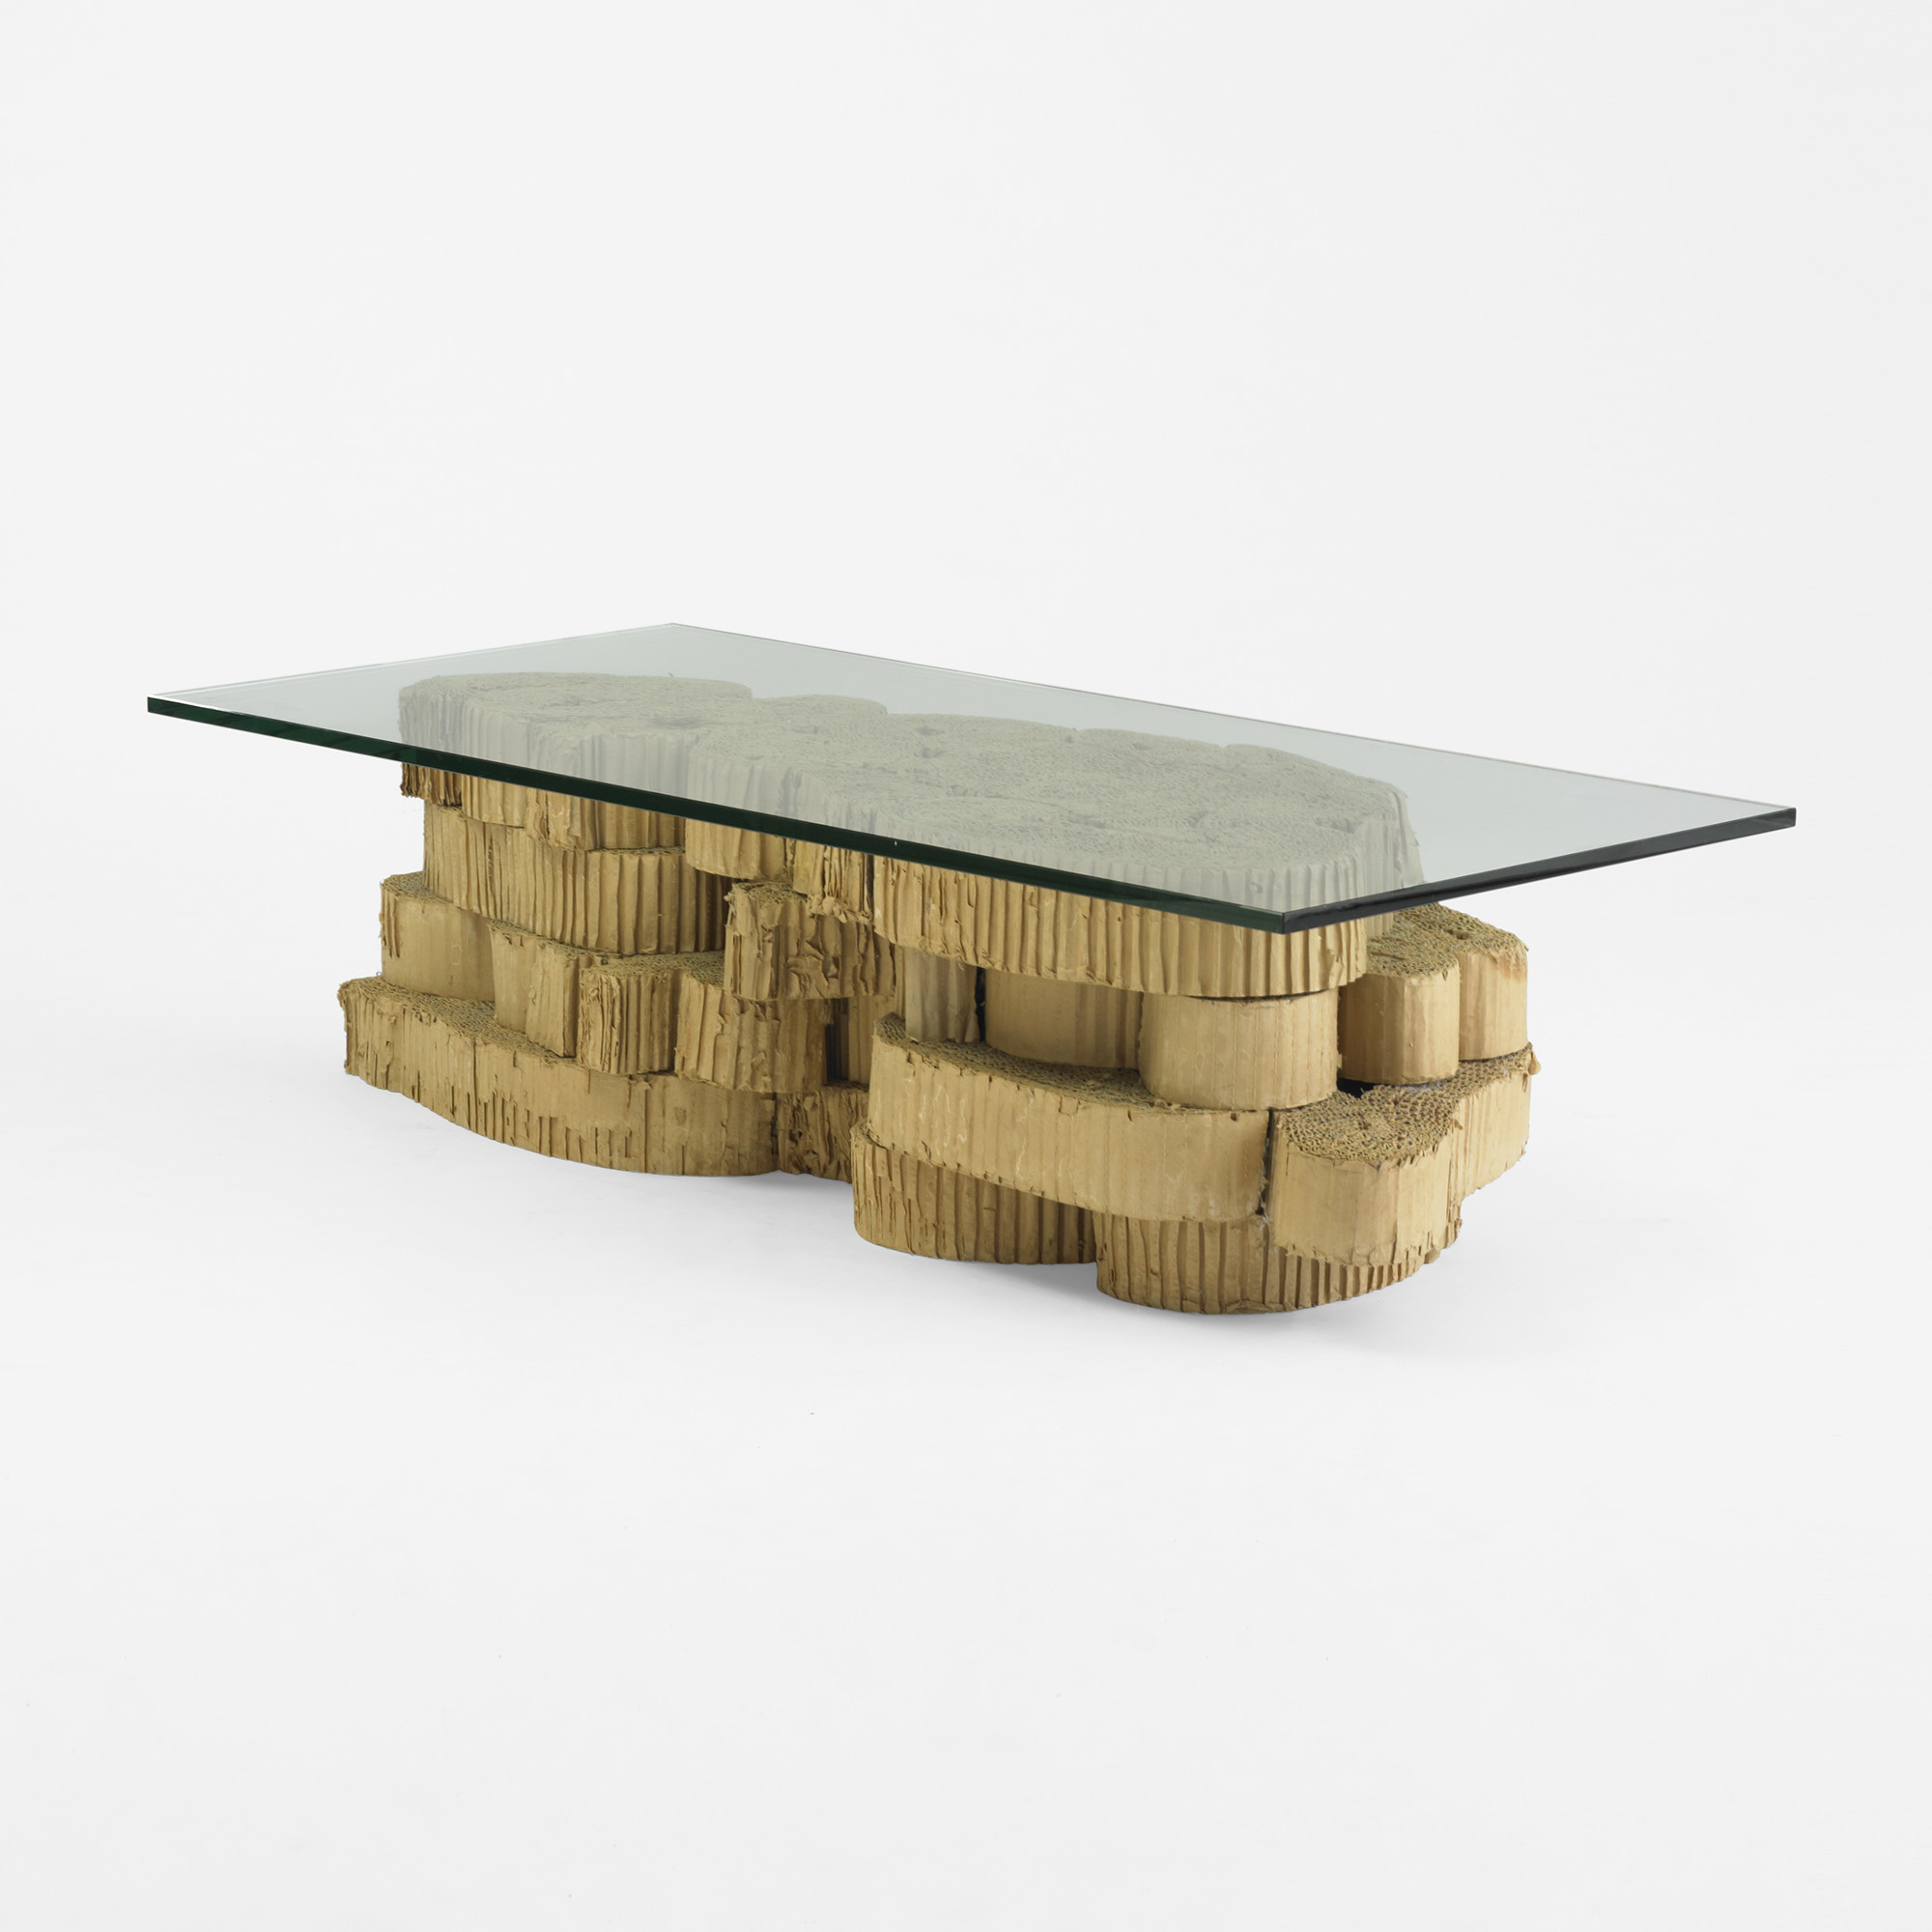 131 Frank Gehry Custom Coffee Table From The Chiat Day Offices In Venice 1 Of 5